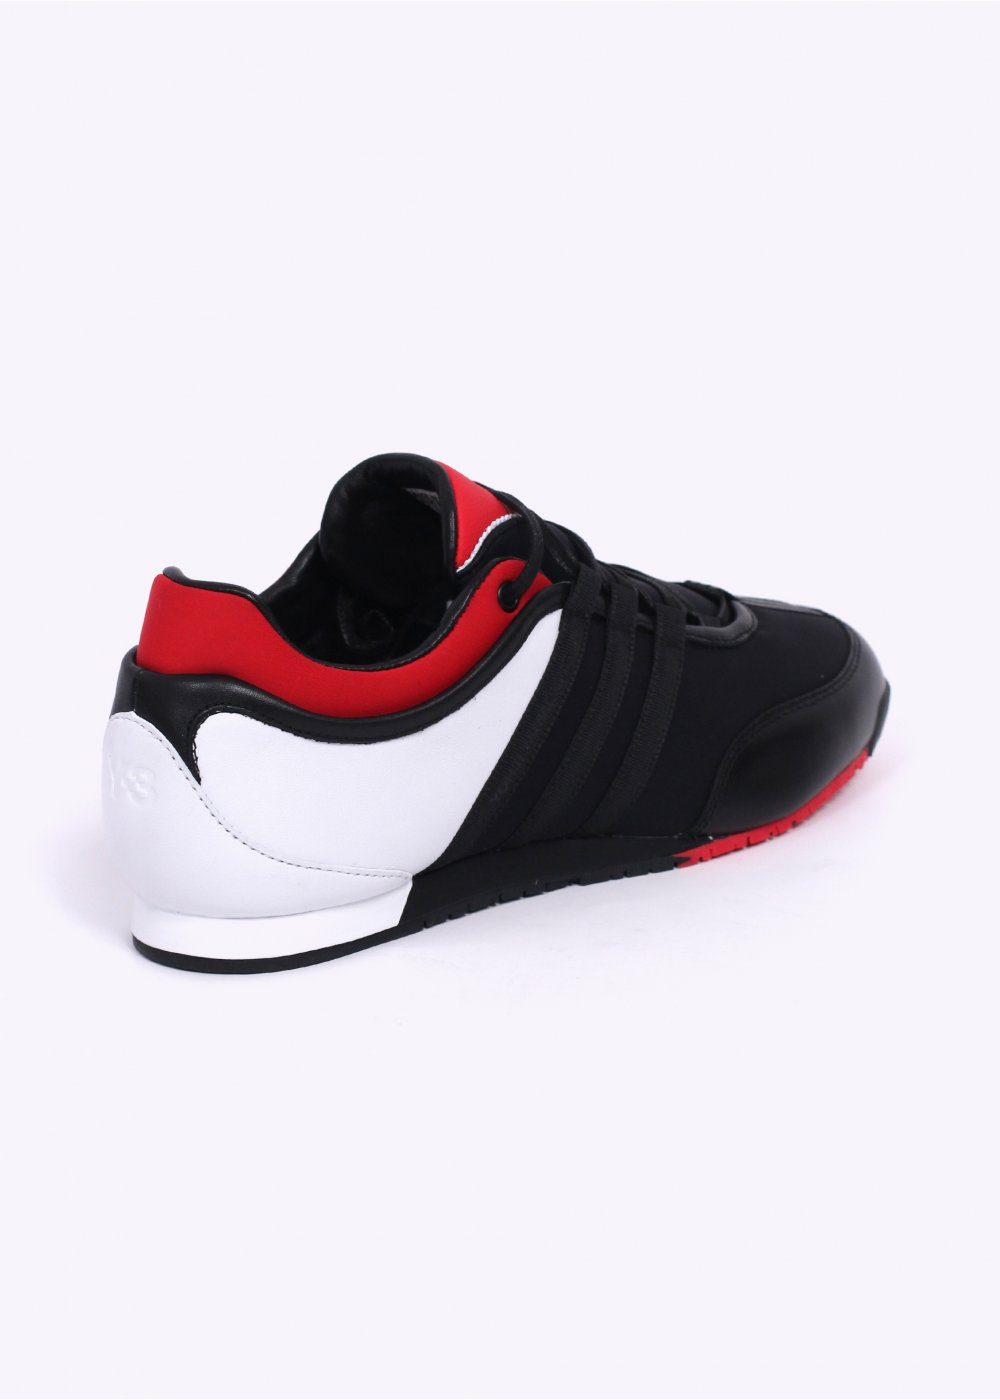 size 40 dc29d 3c39c adidas y3 boxing